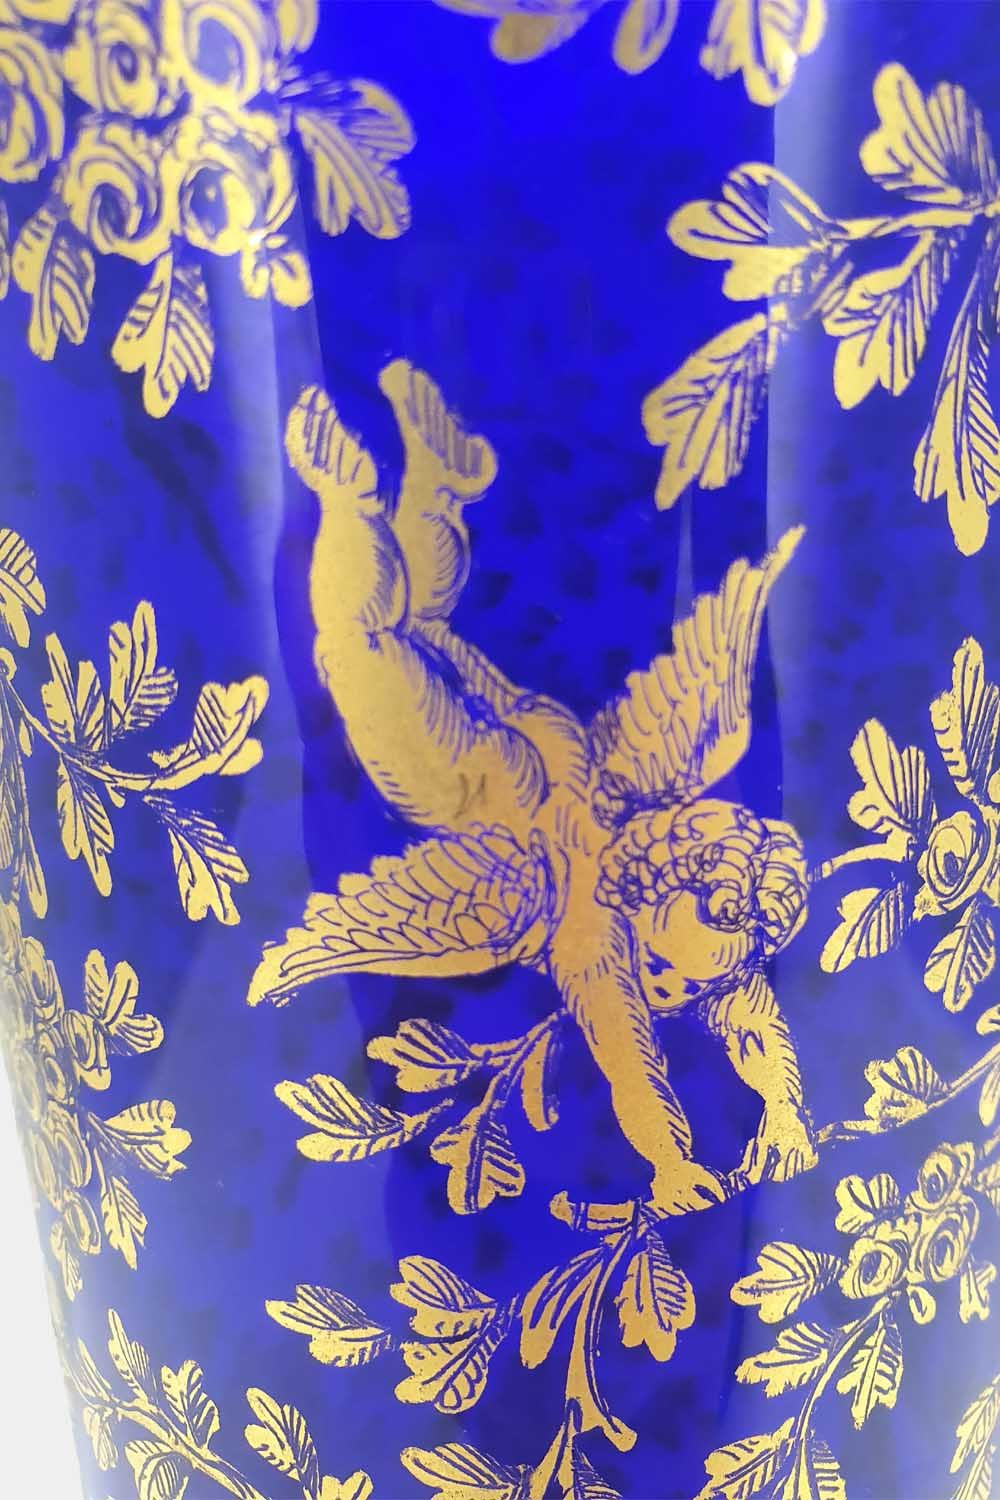 Blue vase gold graffito playing cupids (4)